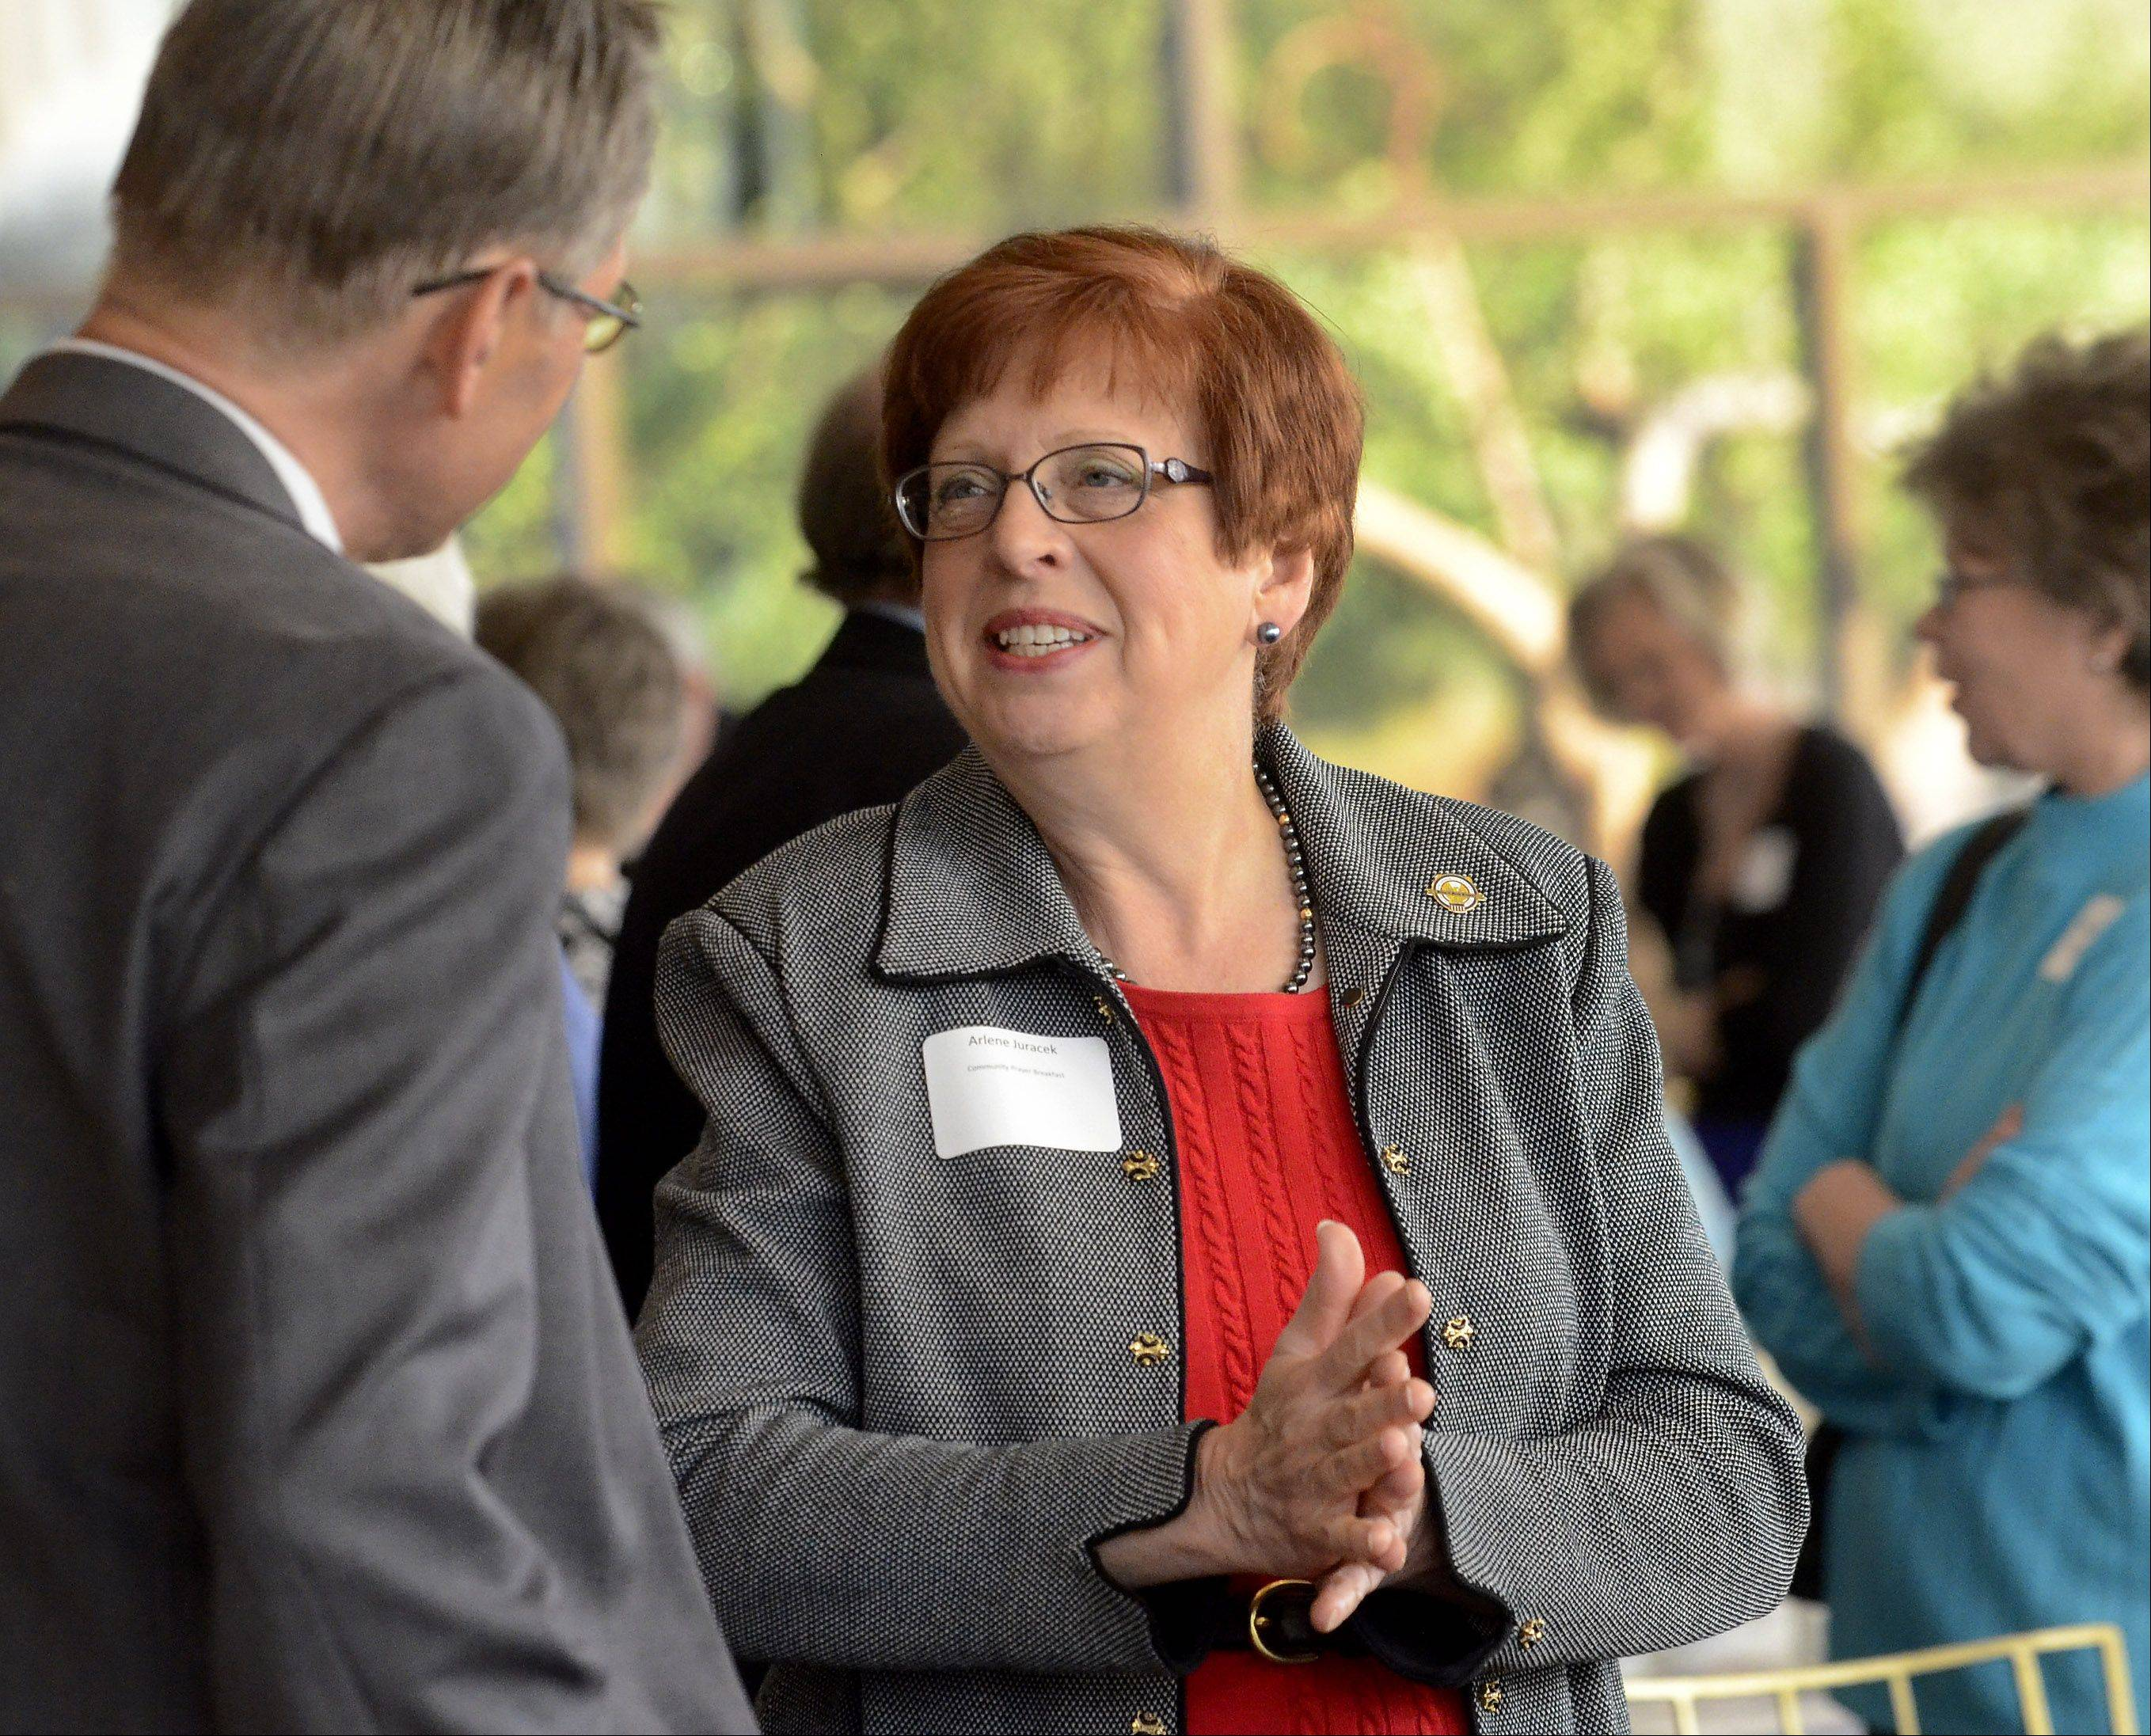 Incoming Mount Prospect Mayor Arlene Juracek chats with guests before the annual Community Prayer Breakfast.